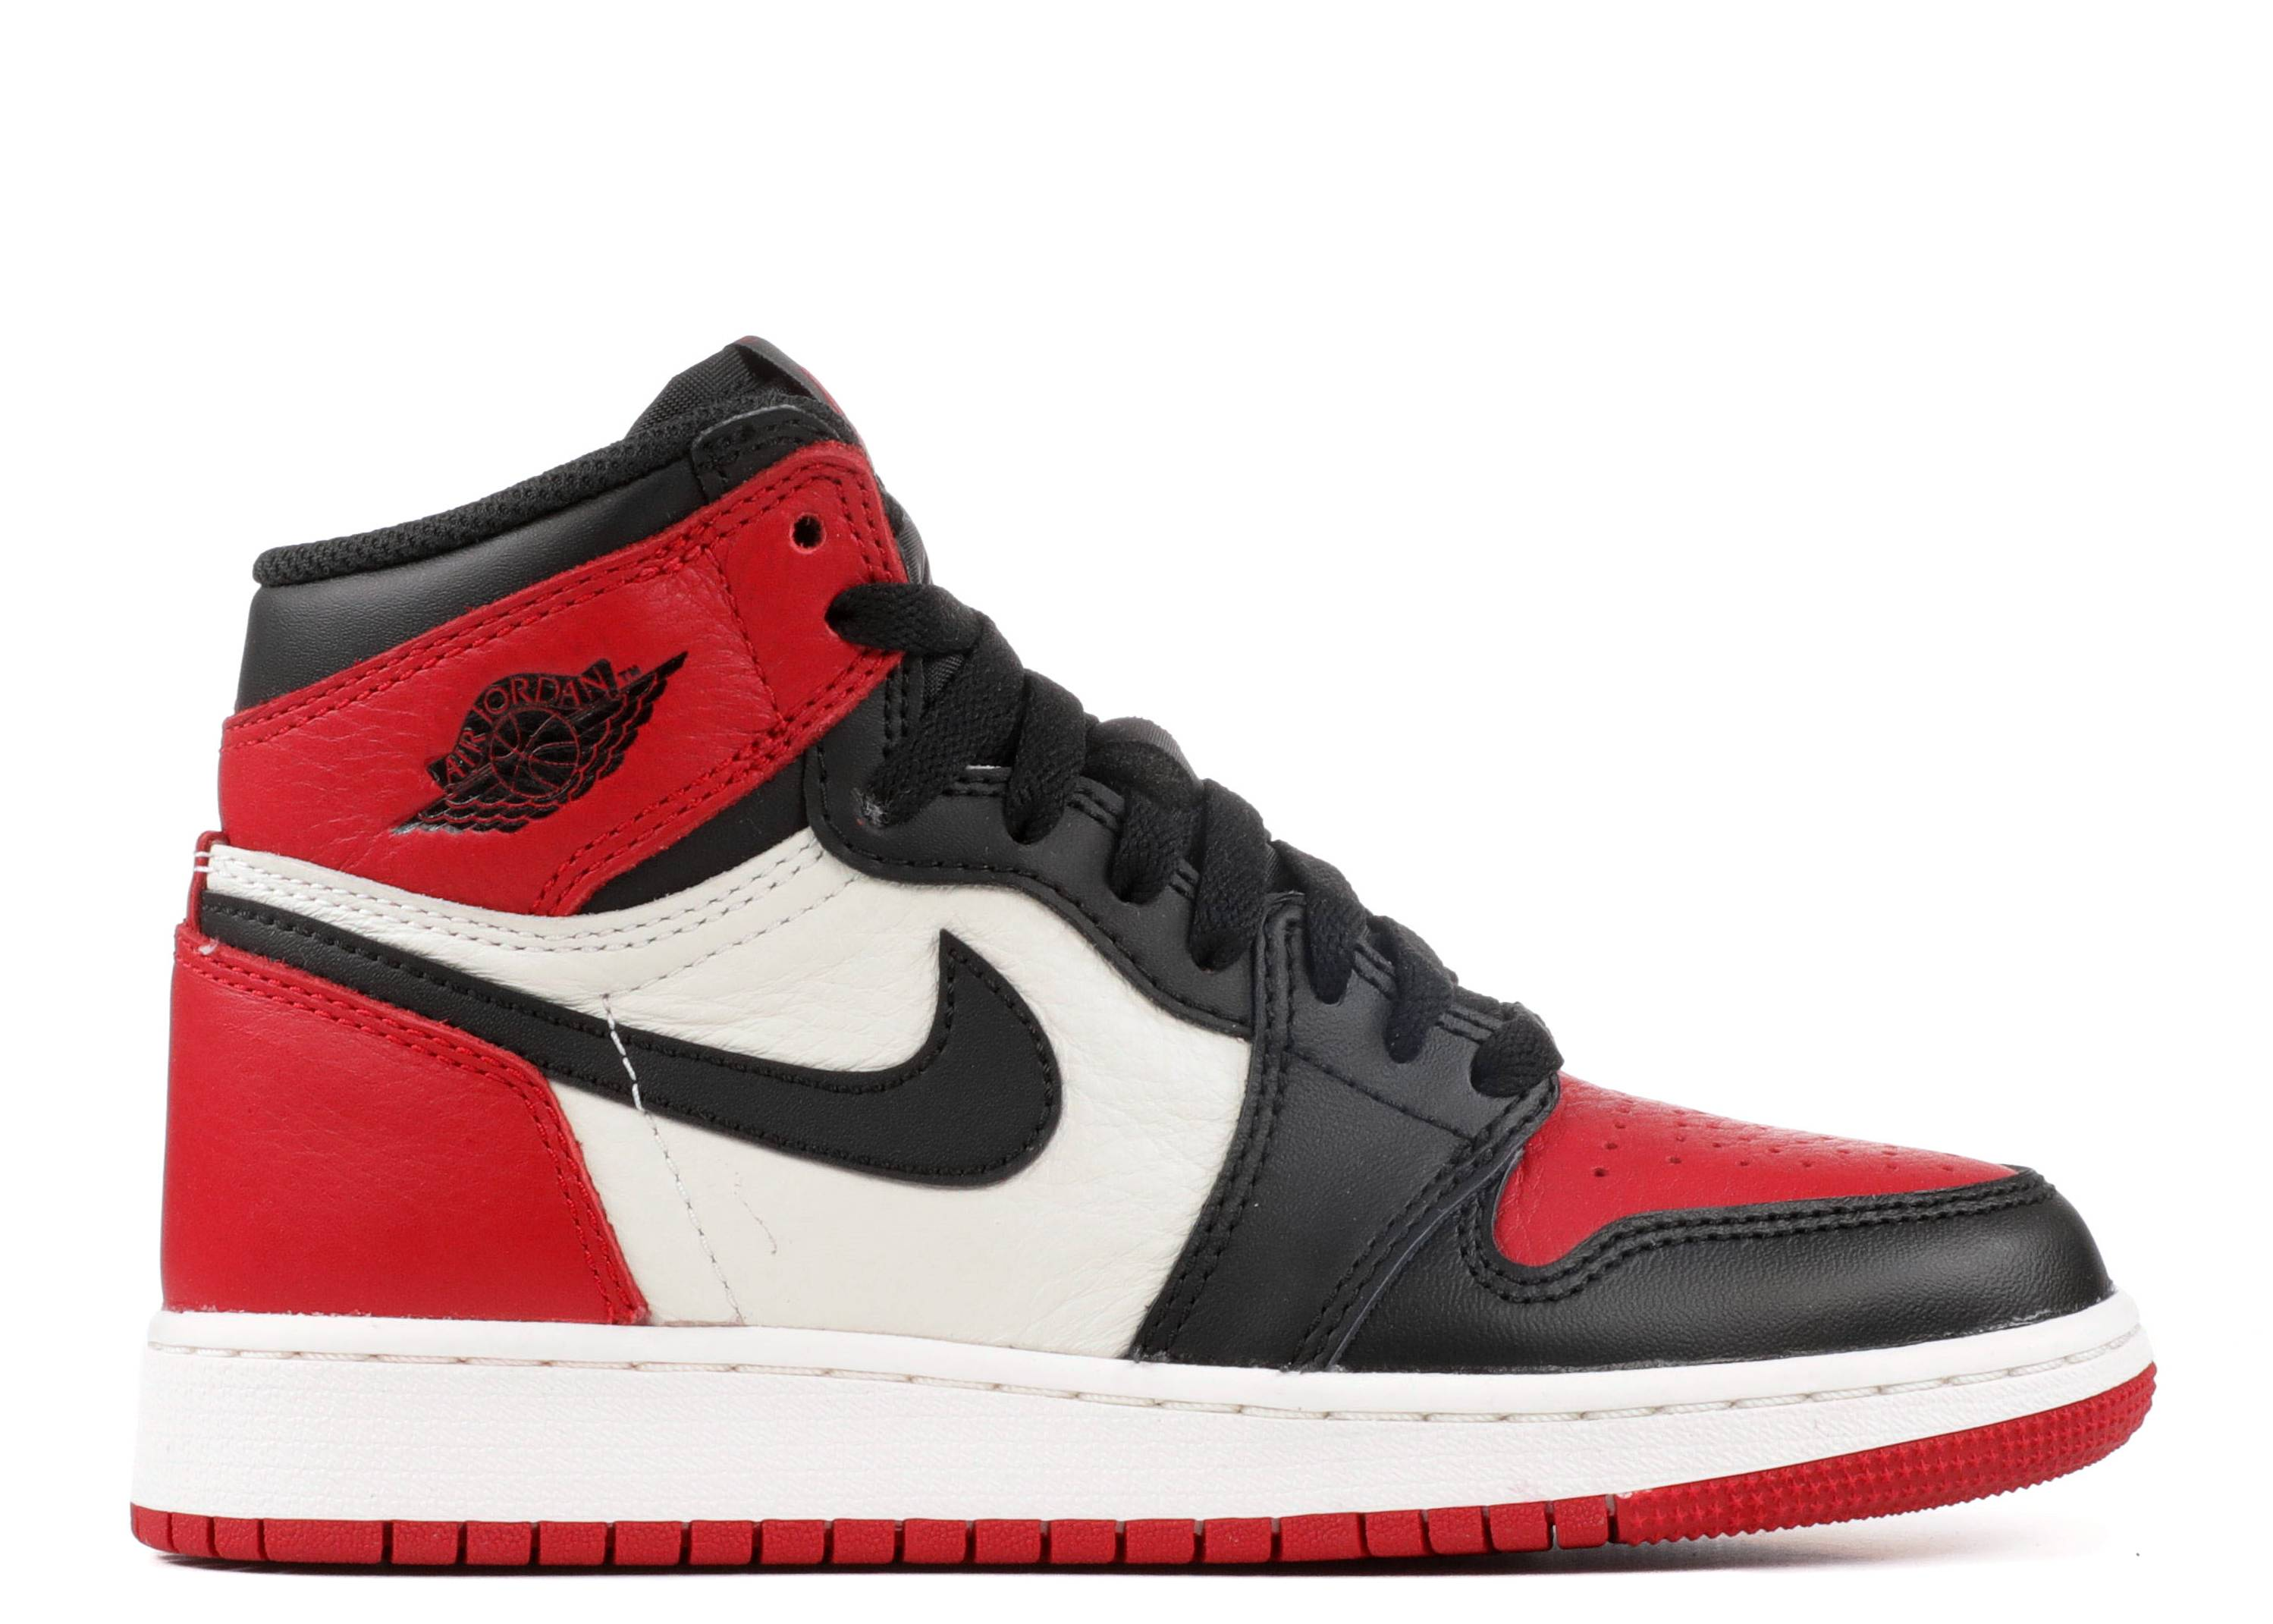 air jordan 1 retro high og bred toe gs